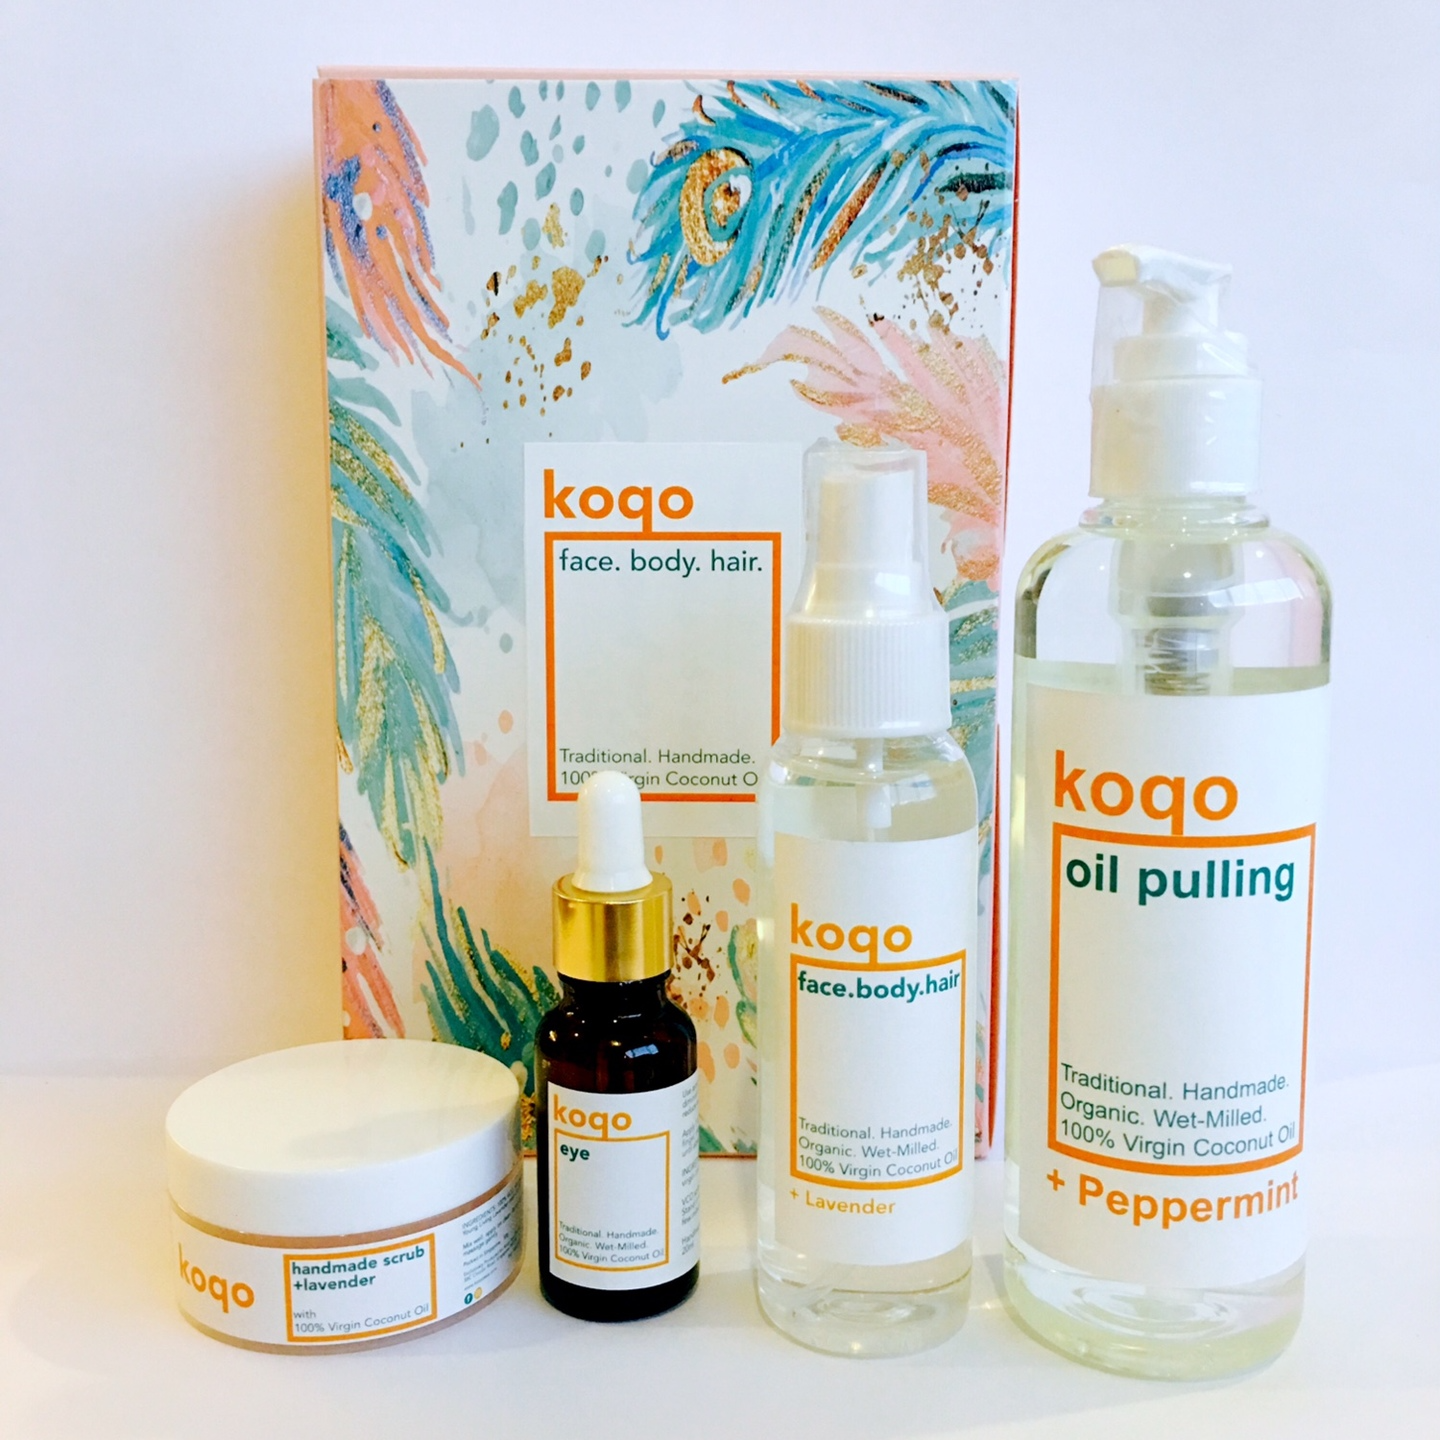 koqo Natural Mouthwash - Peppermint OIL PULLING (250ml pump)